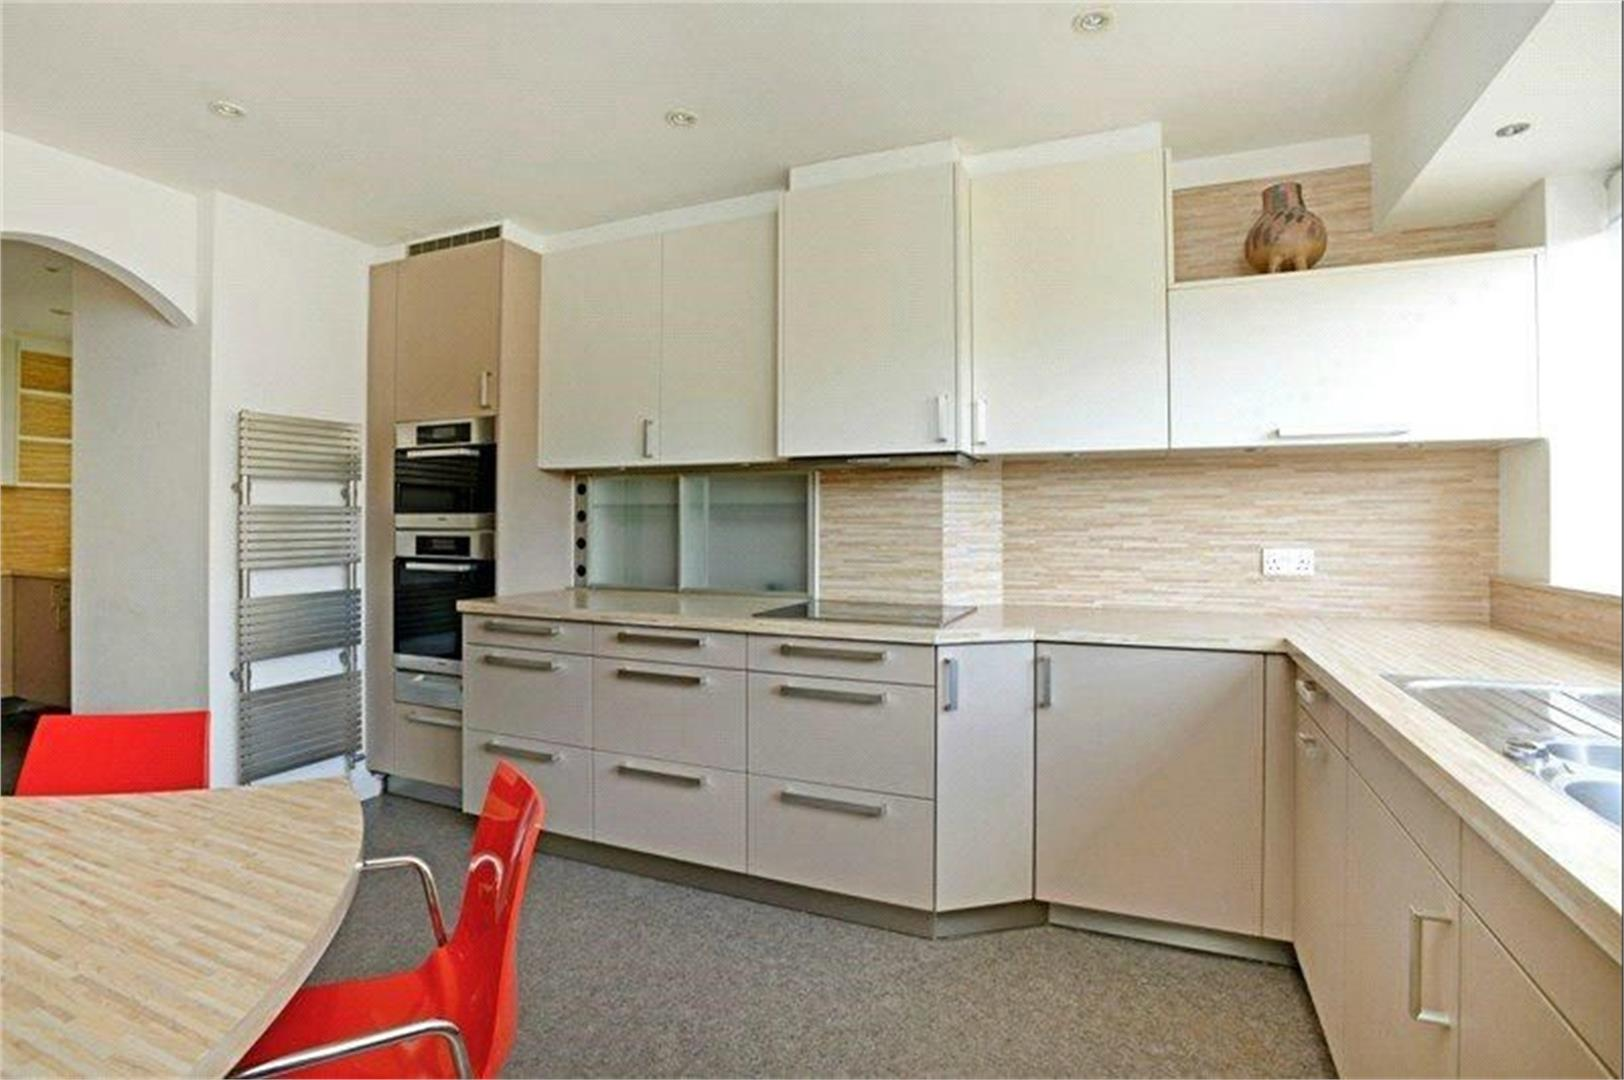 4 bed to rent - (Property Image 4)